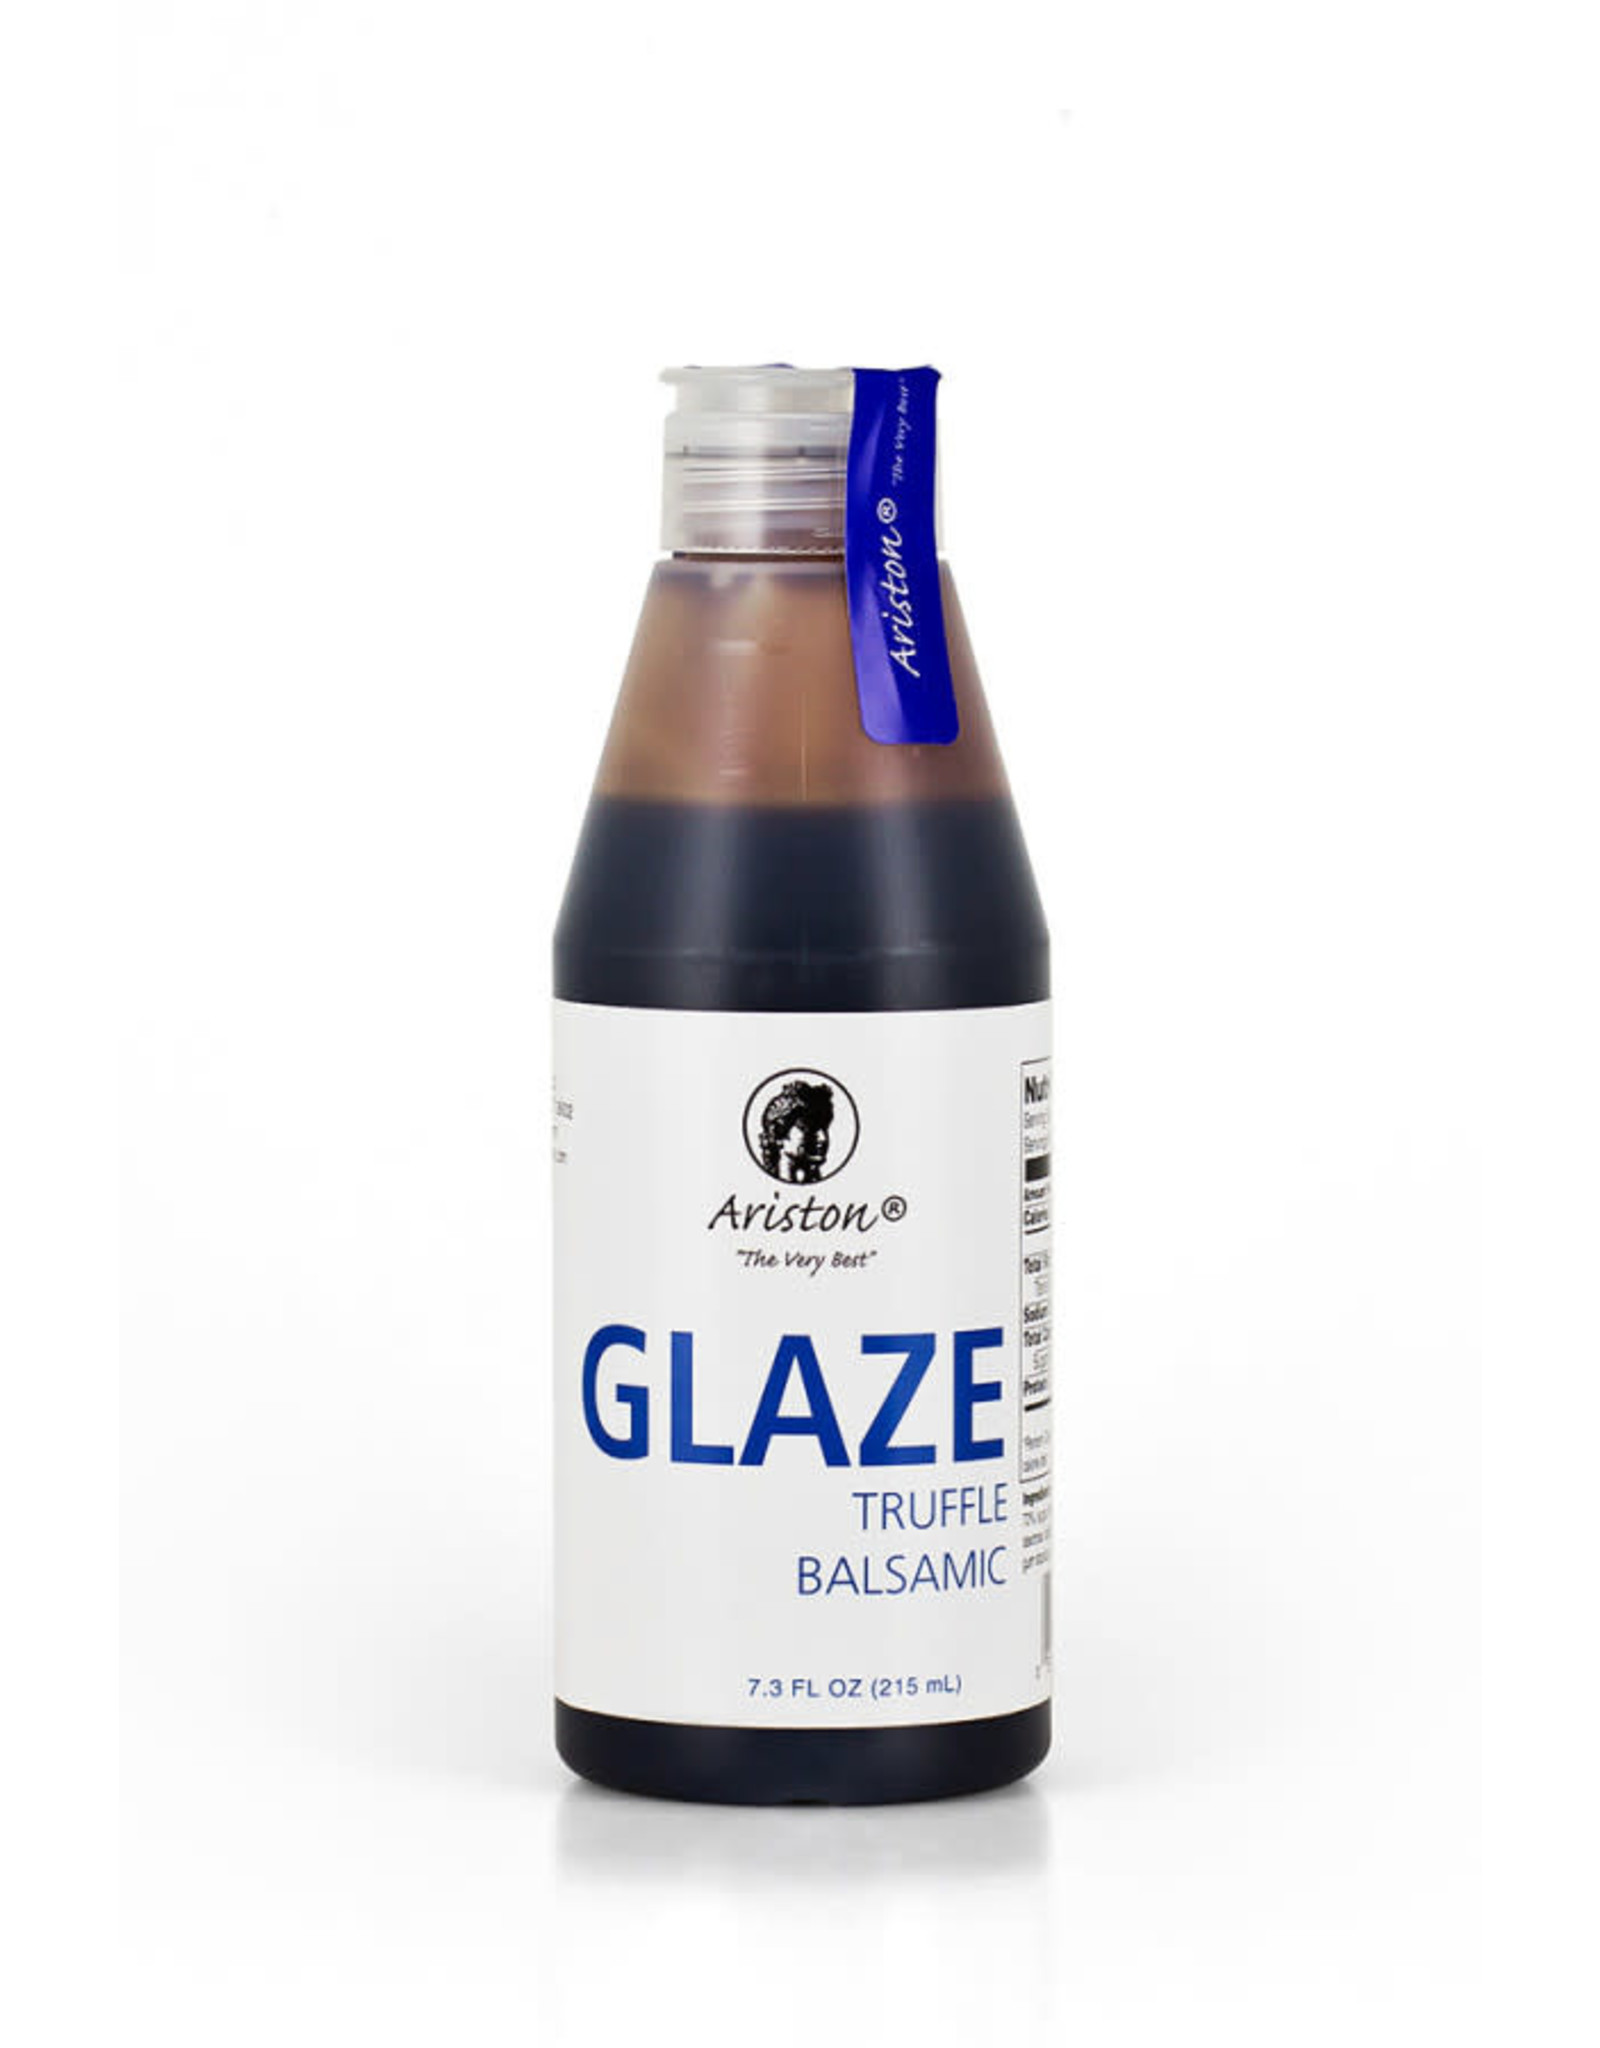 Ariston GLAZE TRUFFLE BALSAMIC